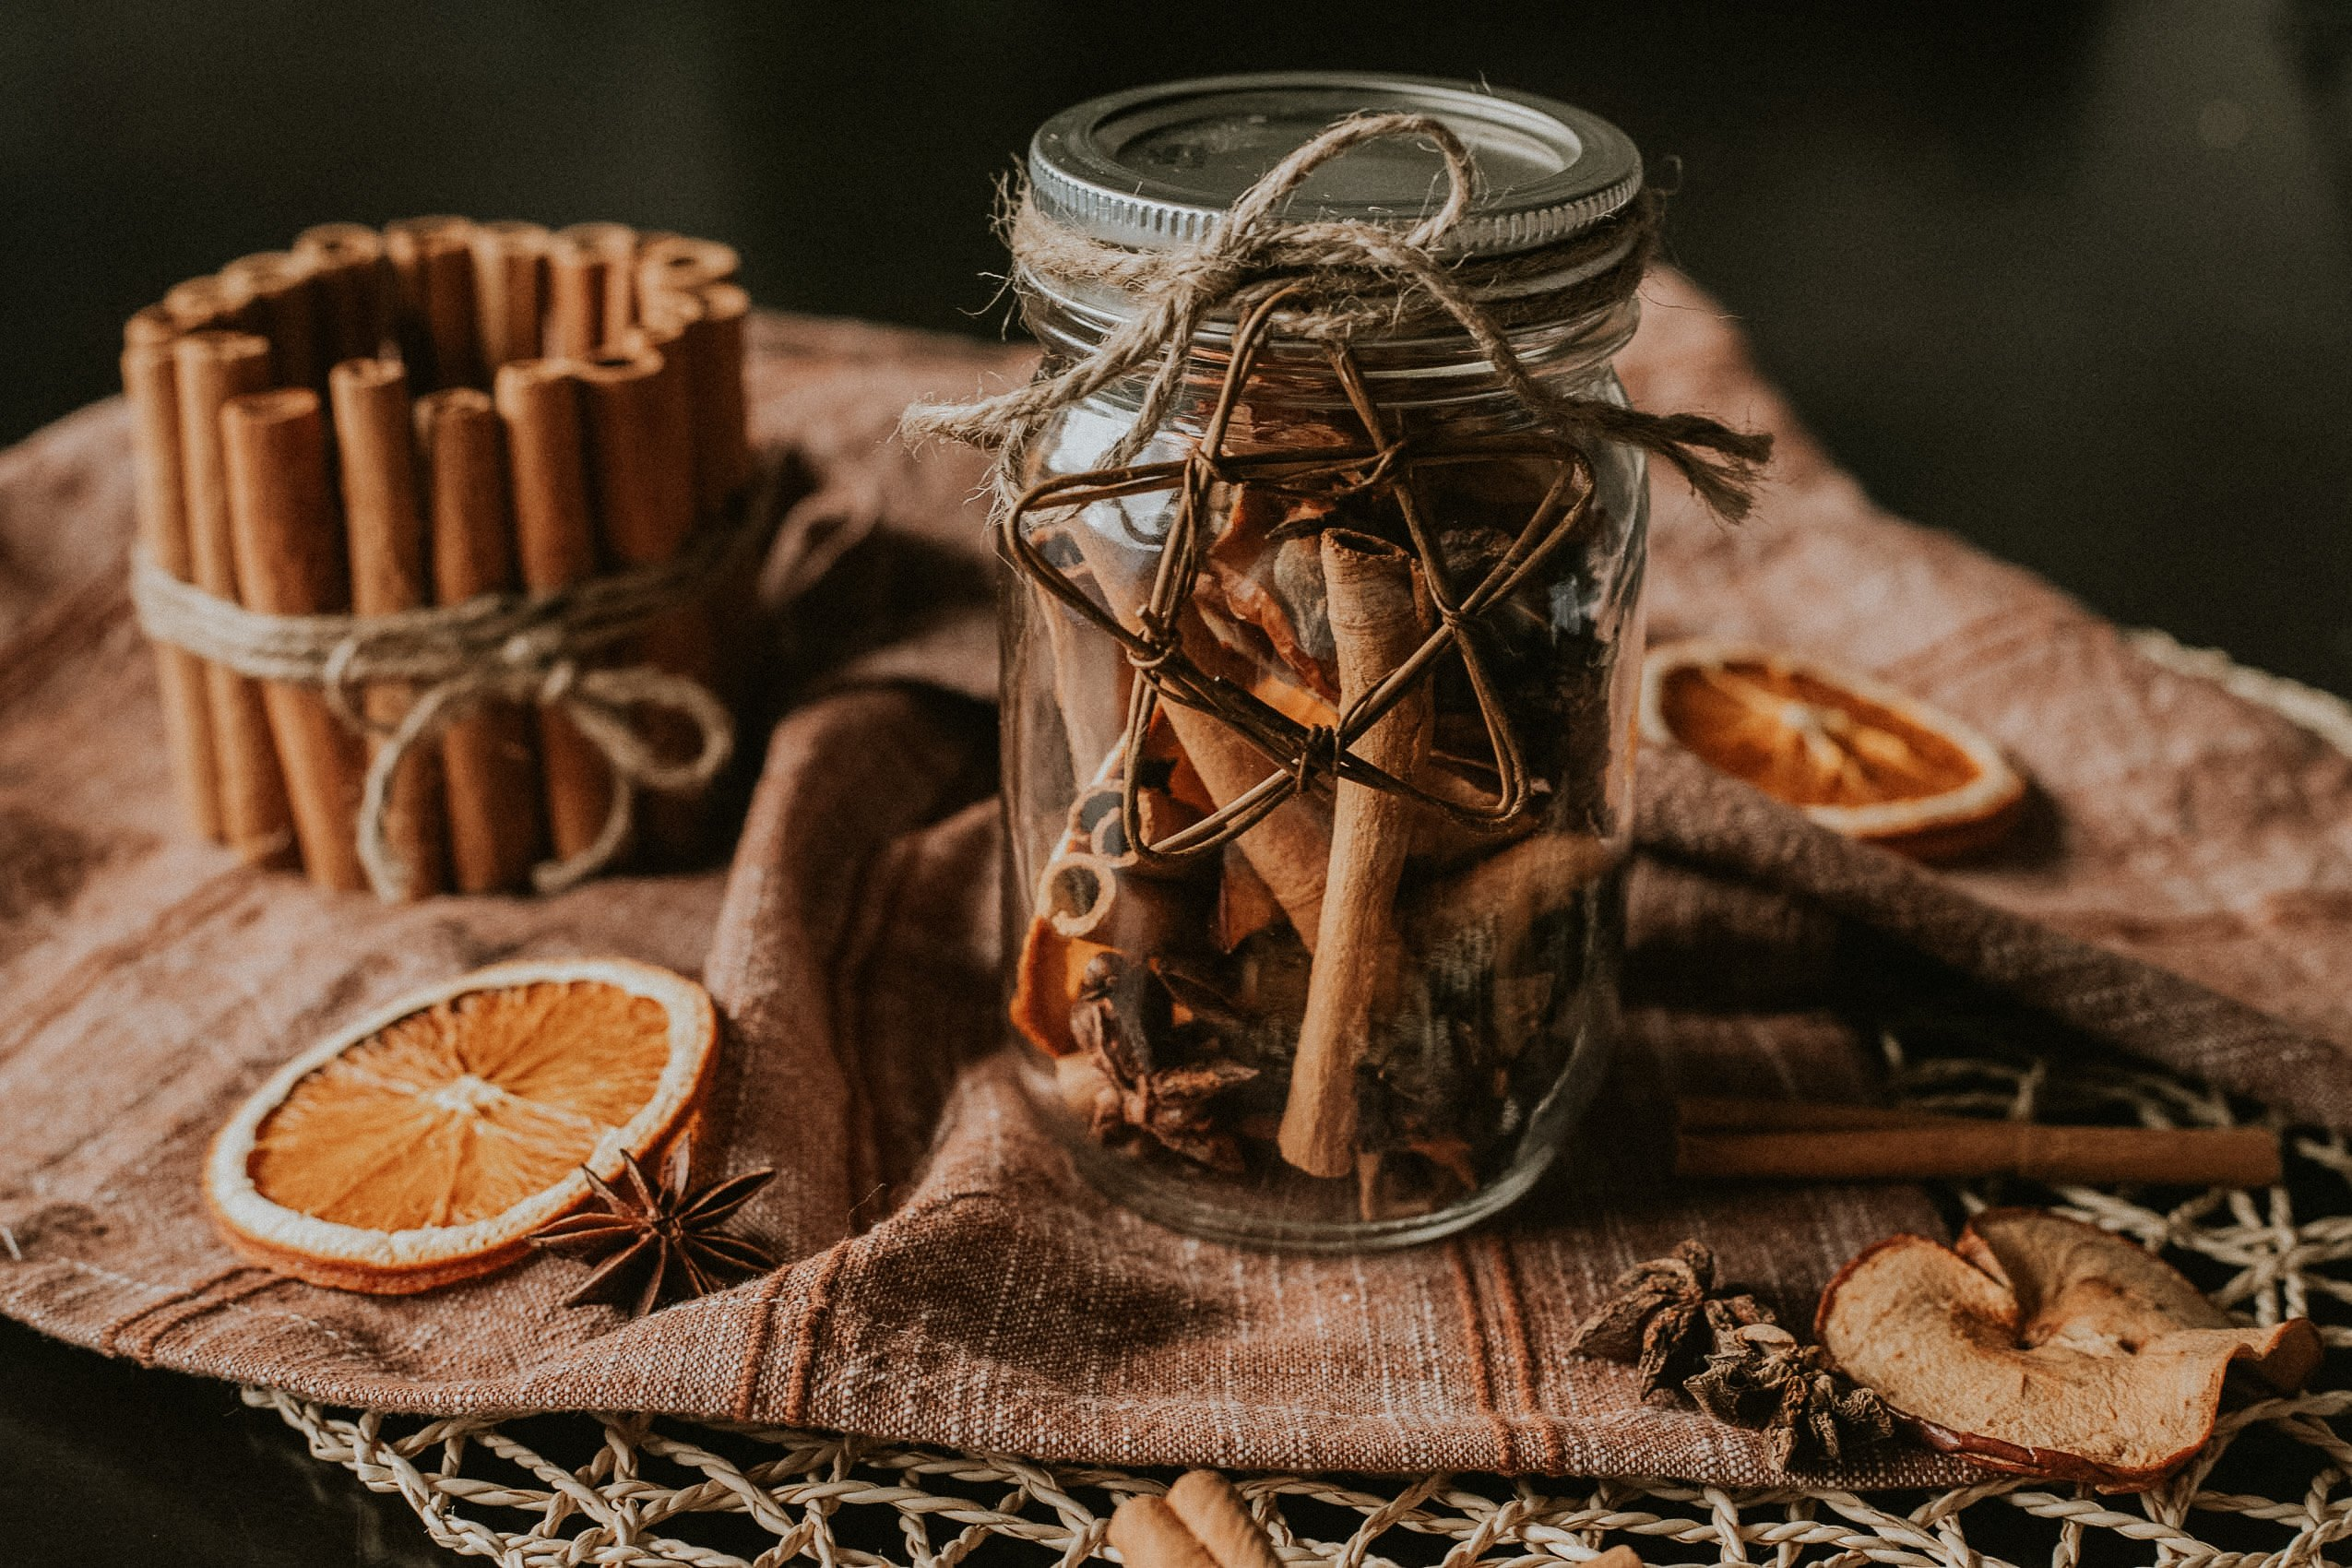 DIY Christmas Stovetop Potpourri with dried apples, oranges, cinnamon sticks, cloves, and star anise